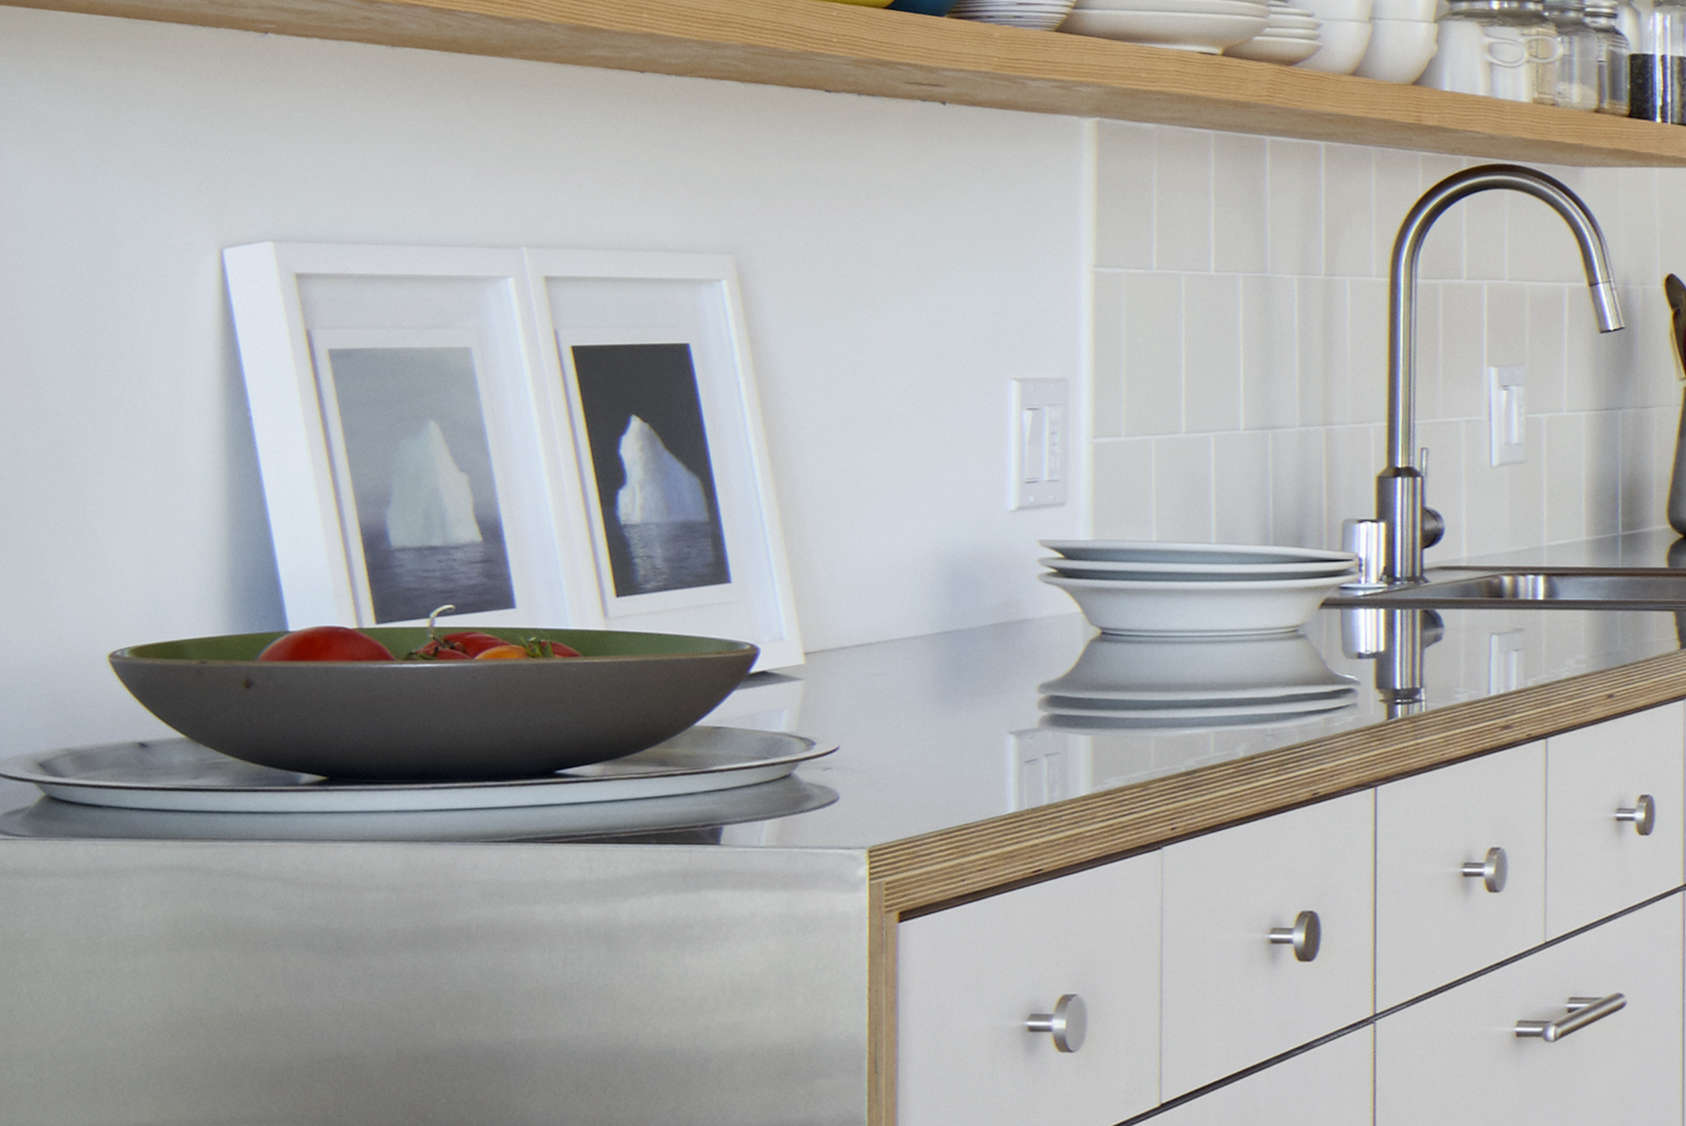 Kitchen of the Week: A Budget Kitchen Rehab in a Santa Monica ...